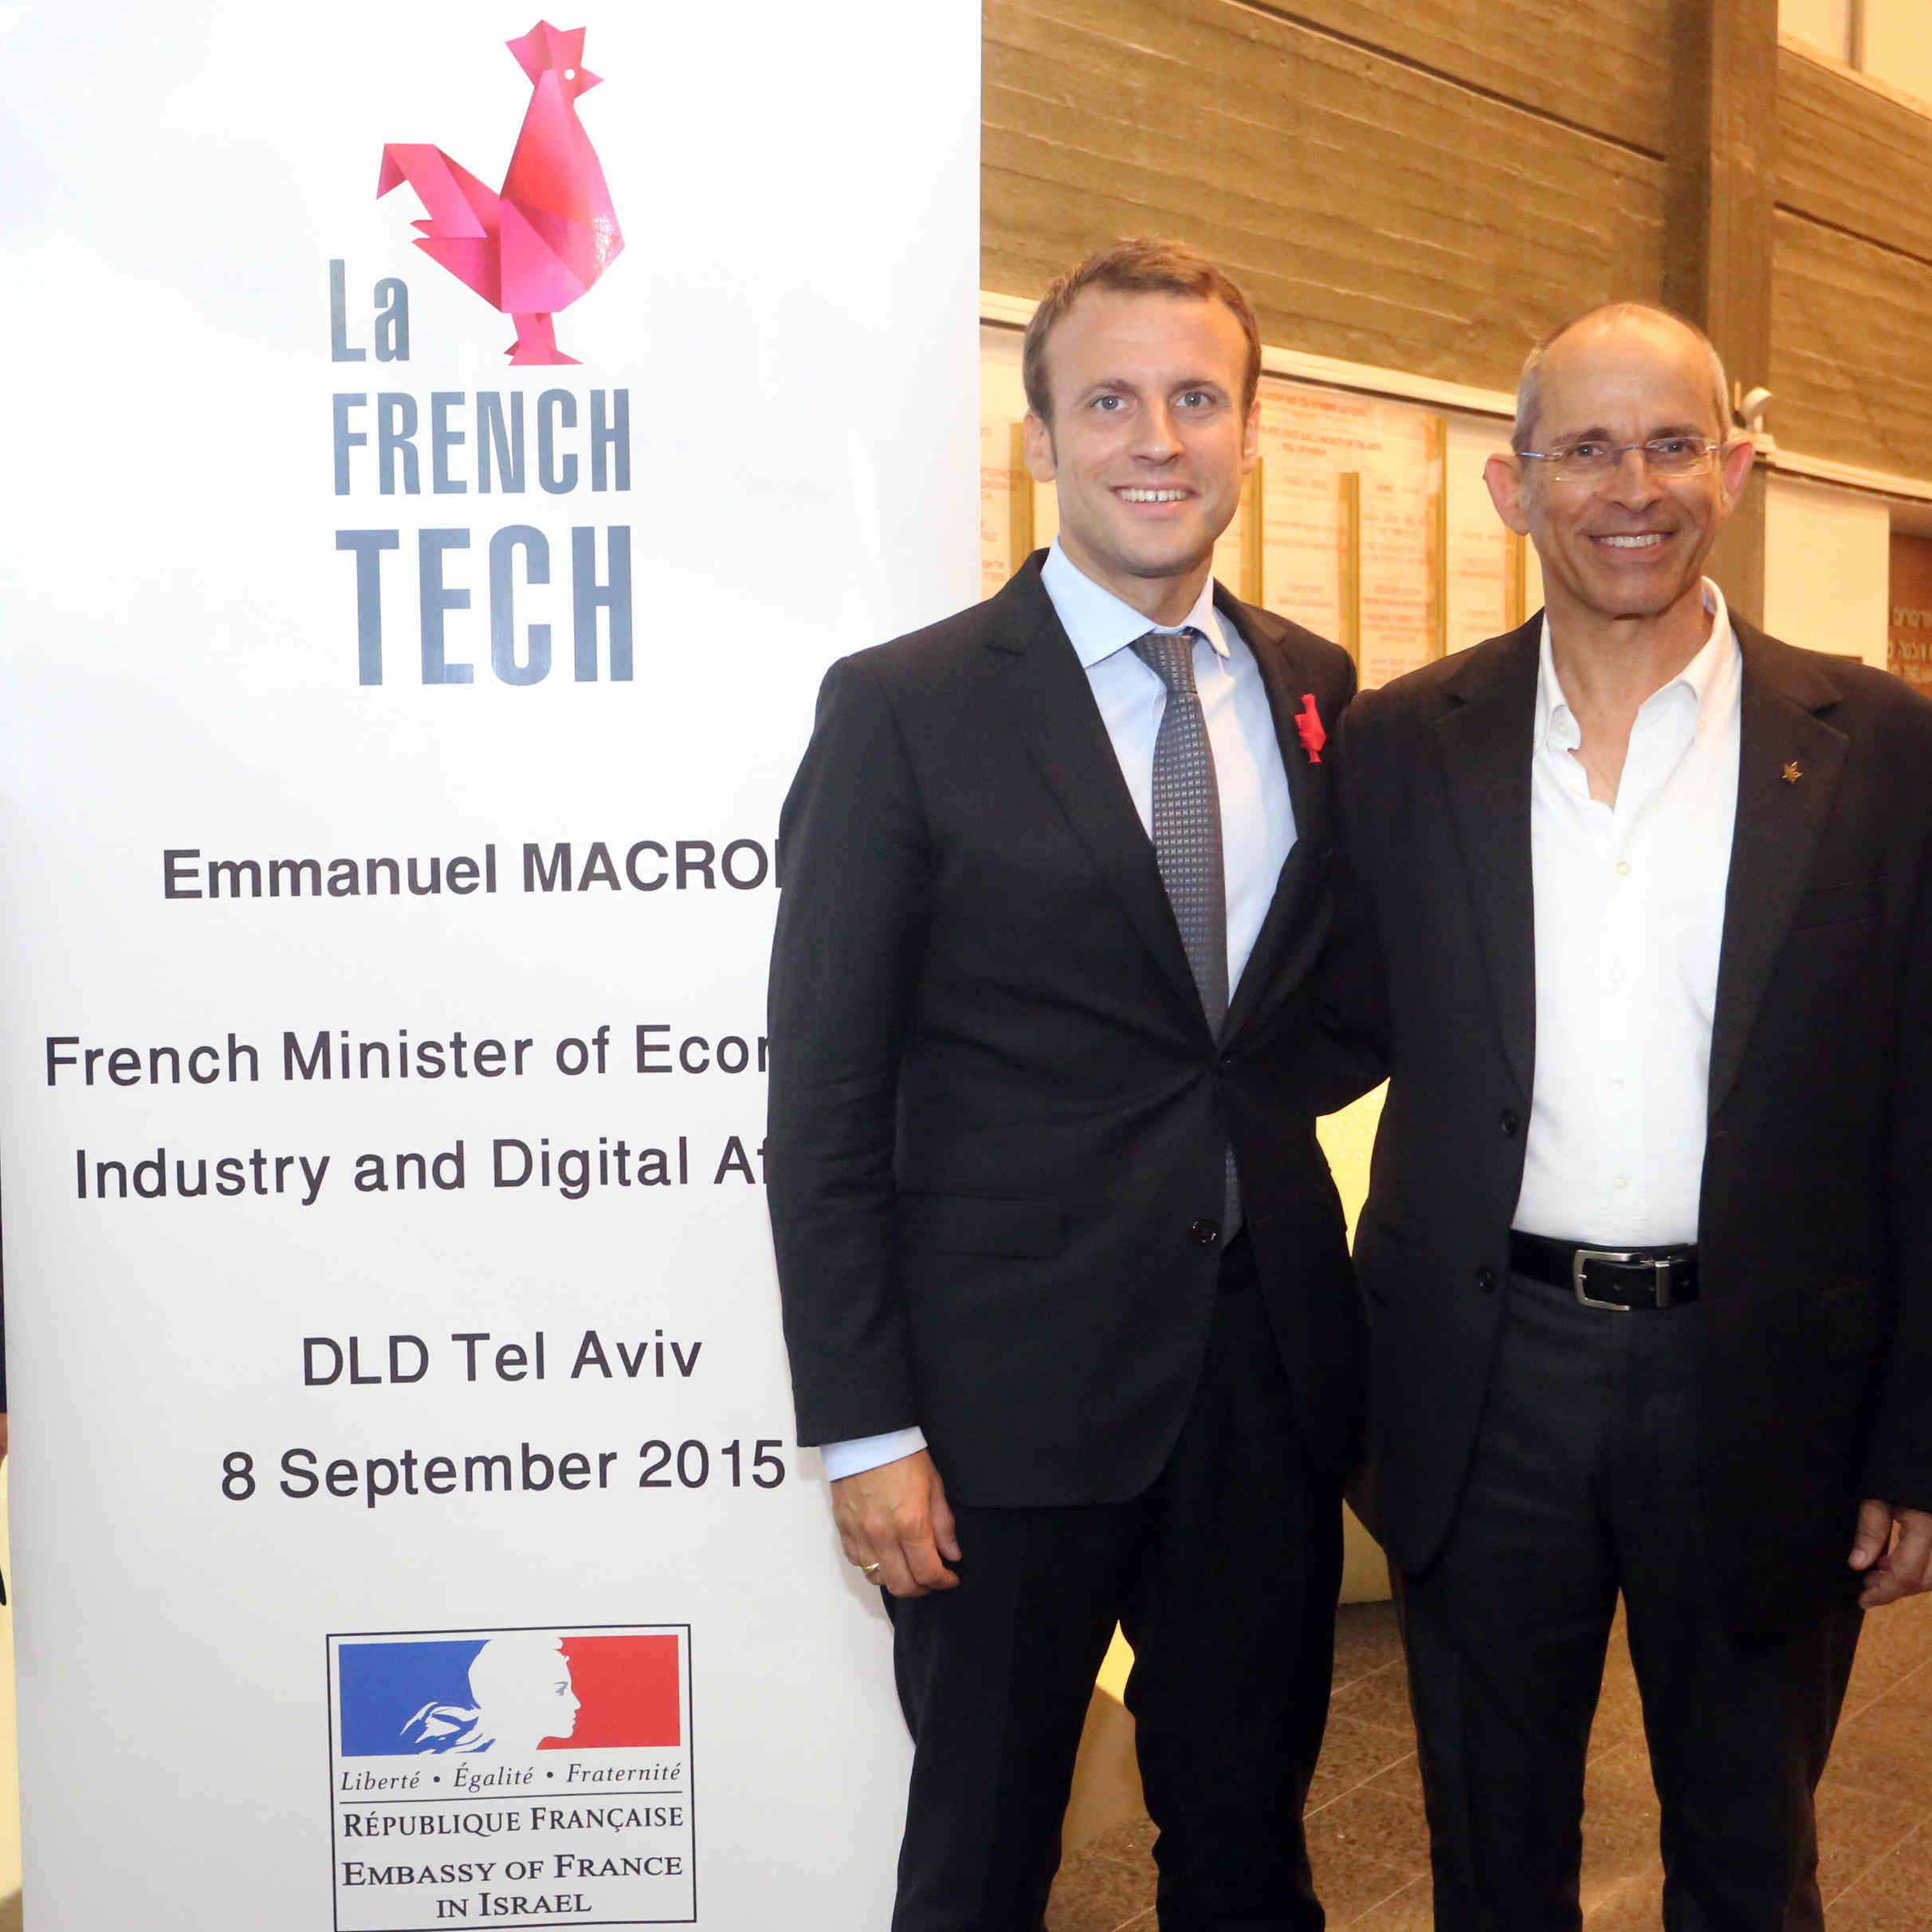 French Economy Minister Visits Tel Aviv University